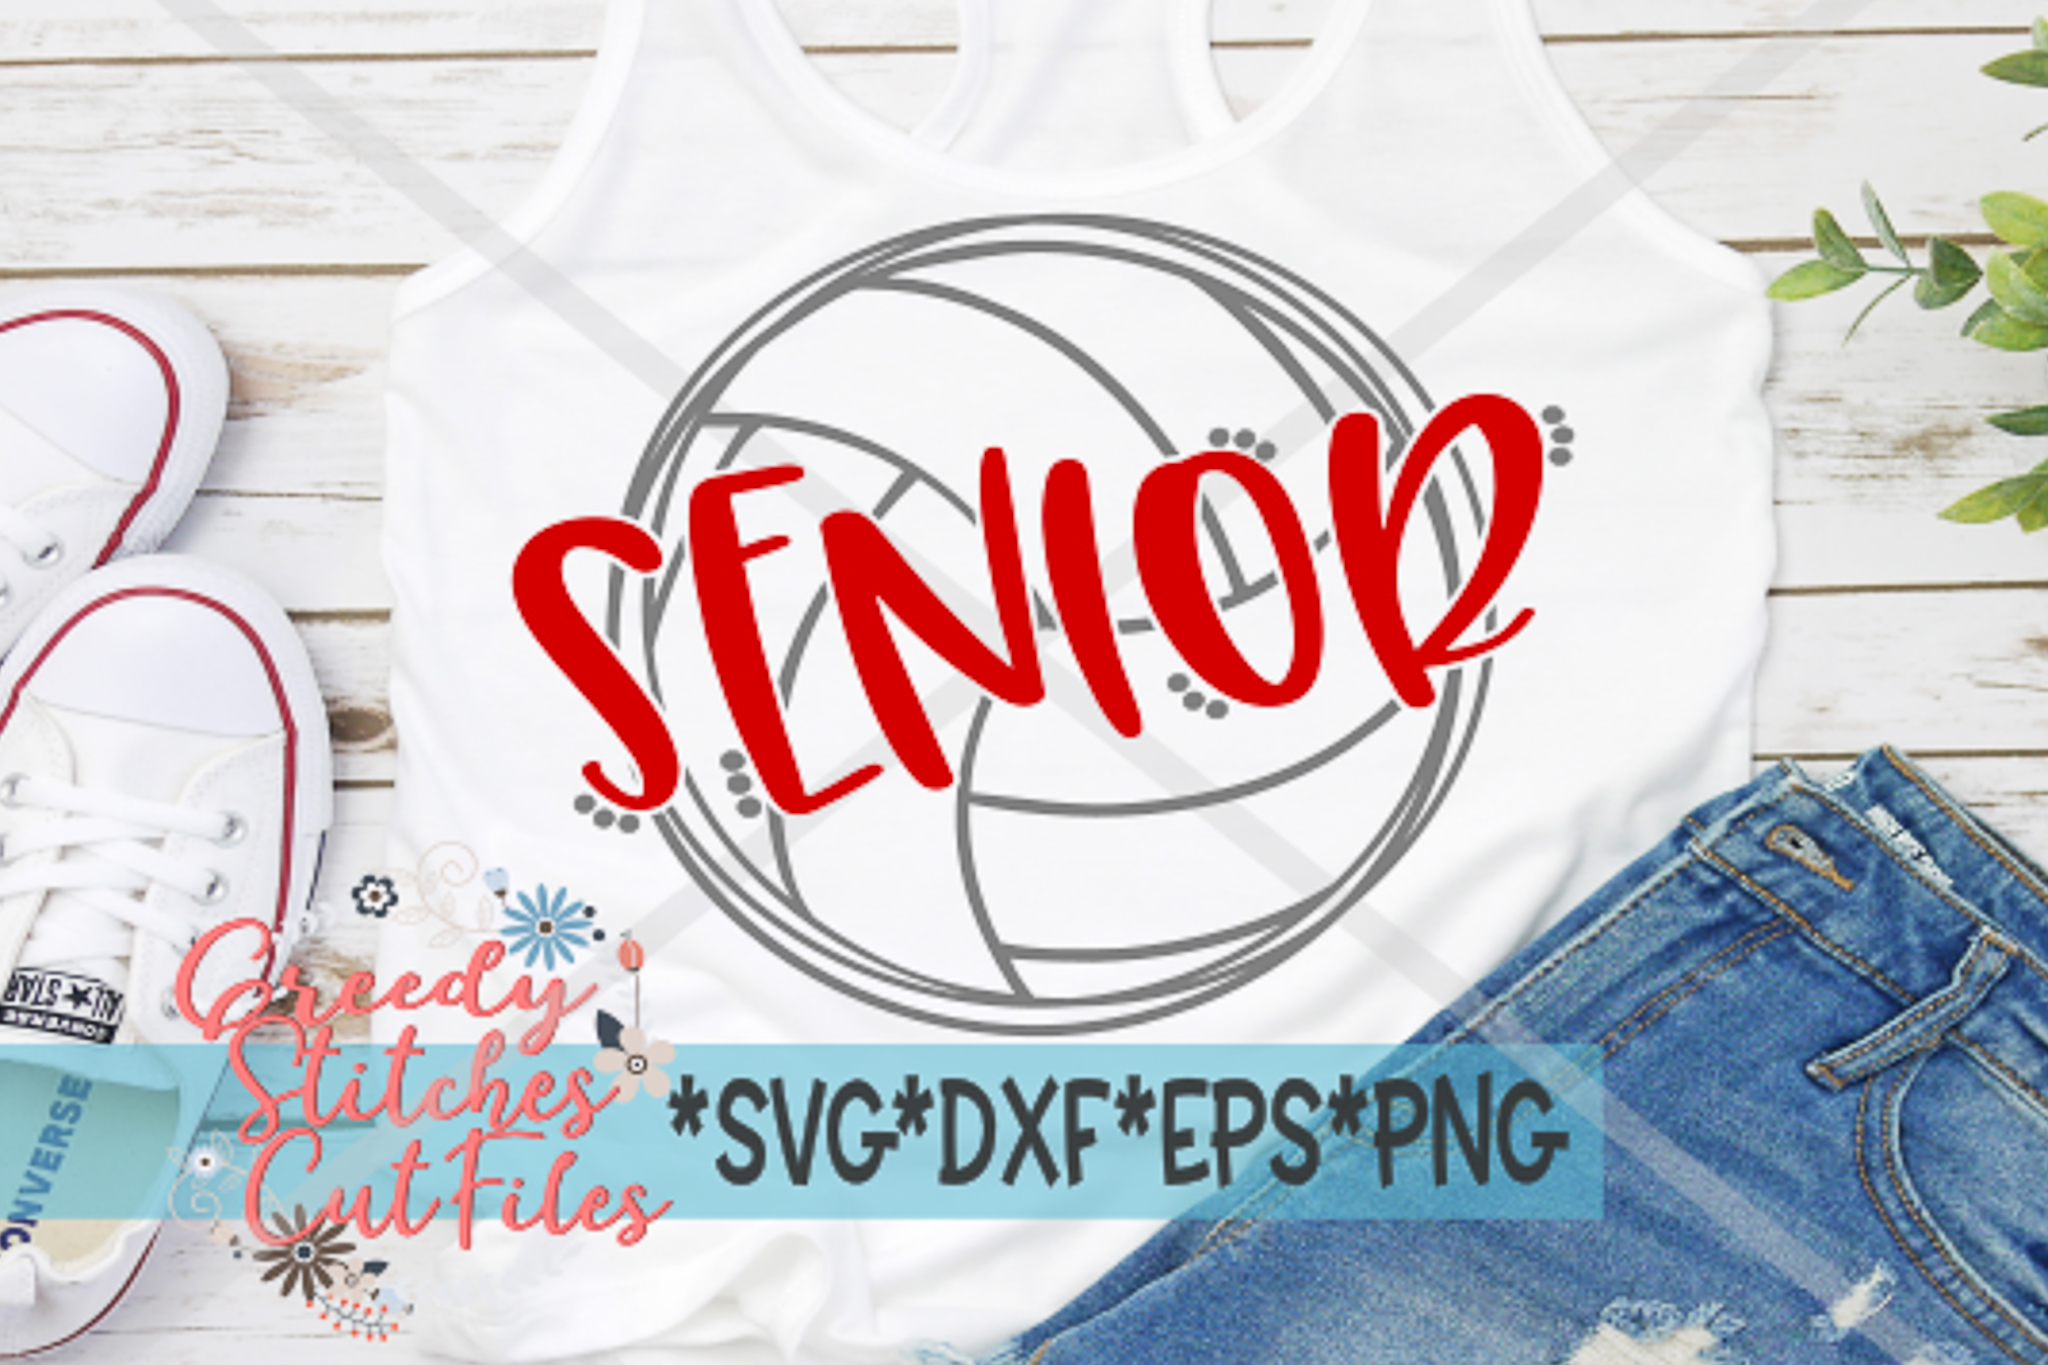 Senior Volleyball SVG, DXF, EPS, PNG Files example image 2